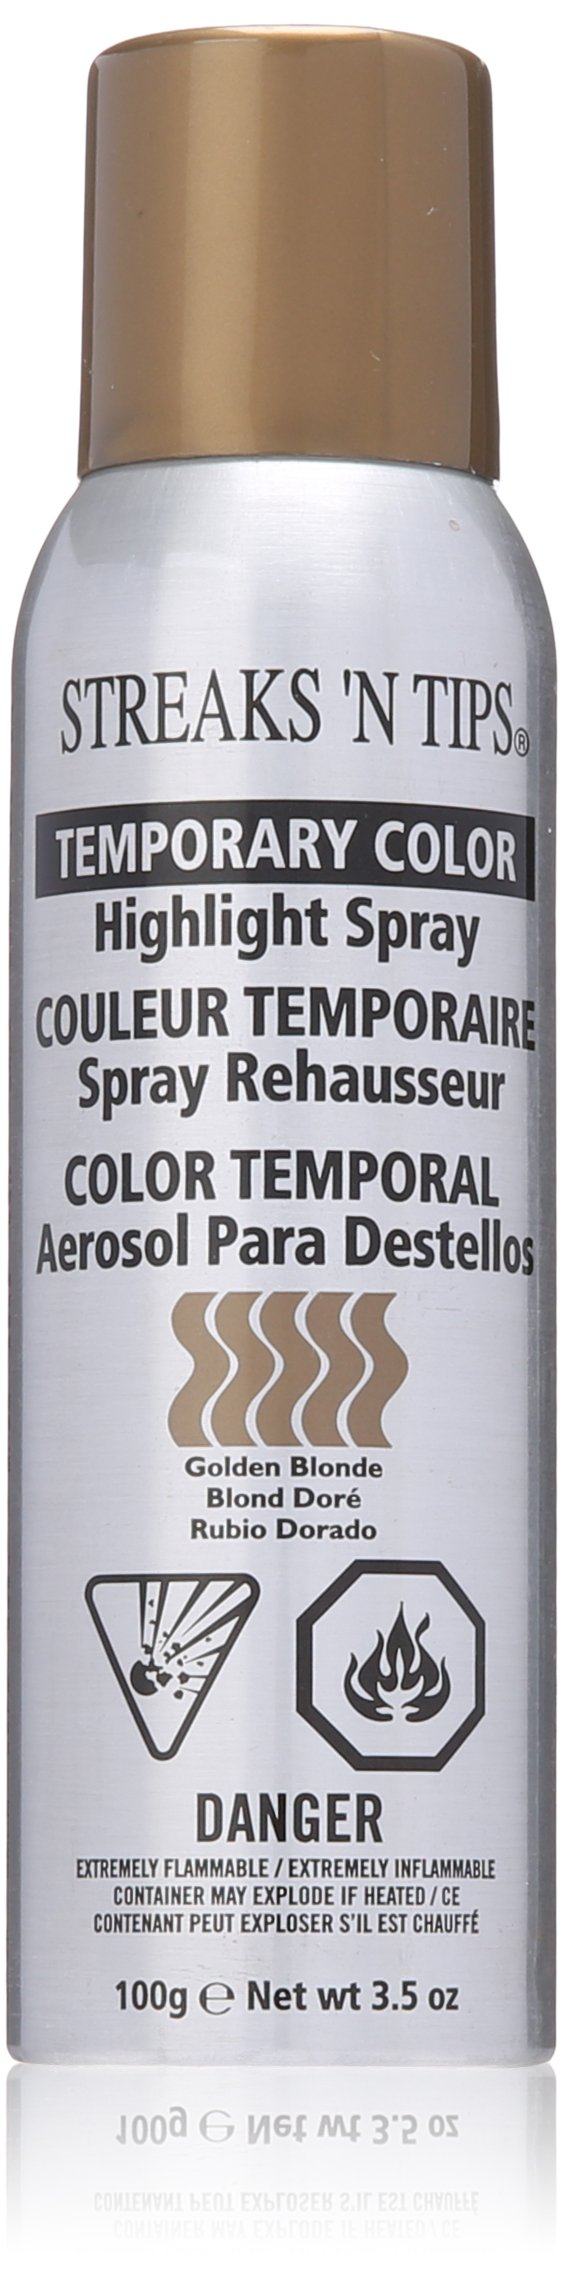 Streaks N Tips Golden Blonde Temporary Spray-on Hair Color, ...